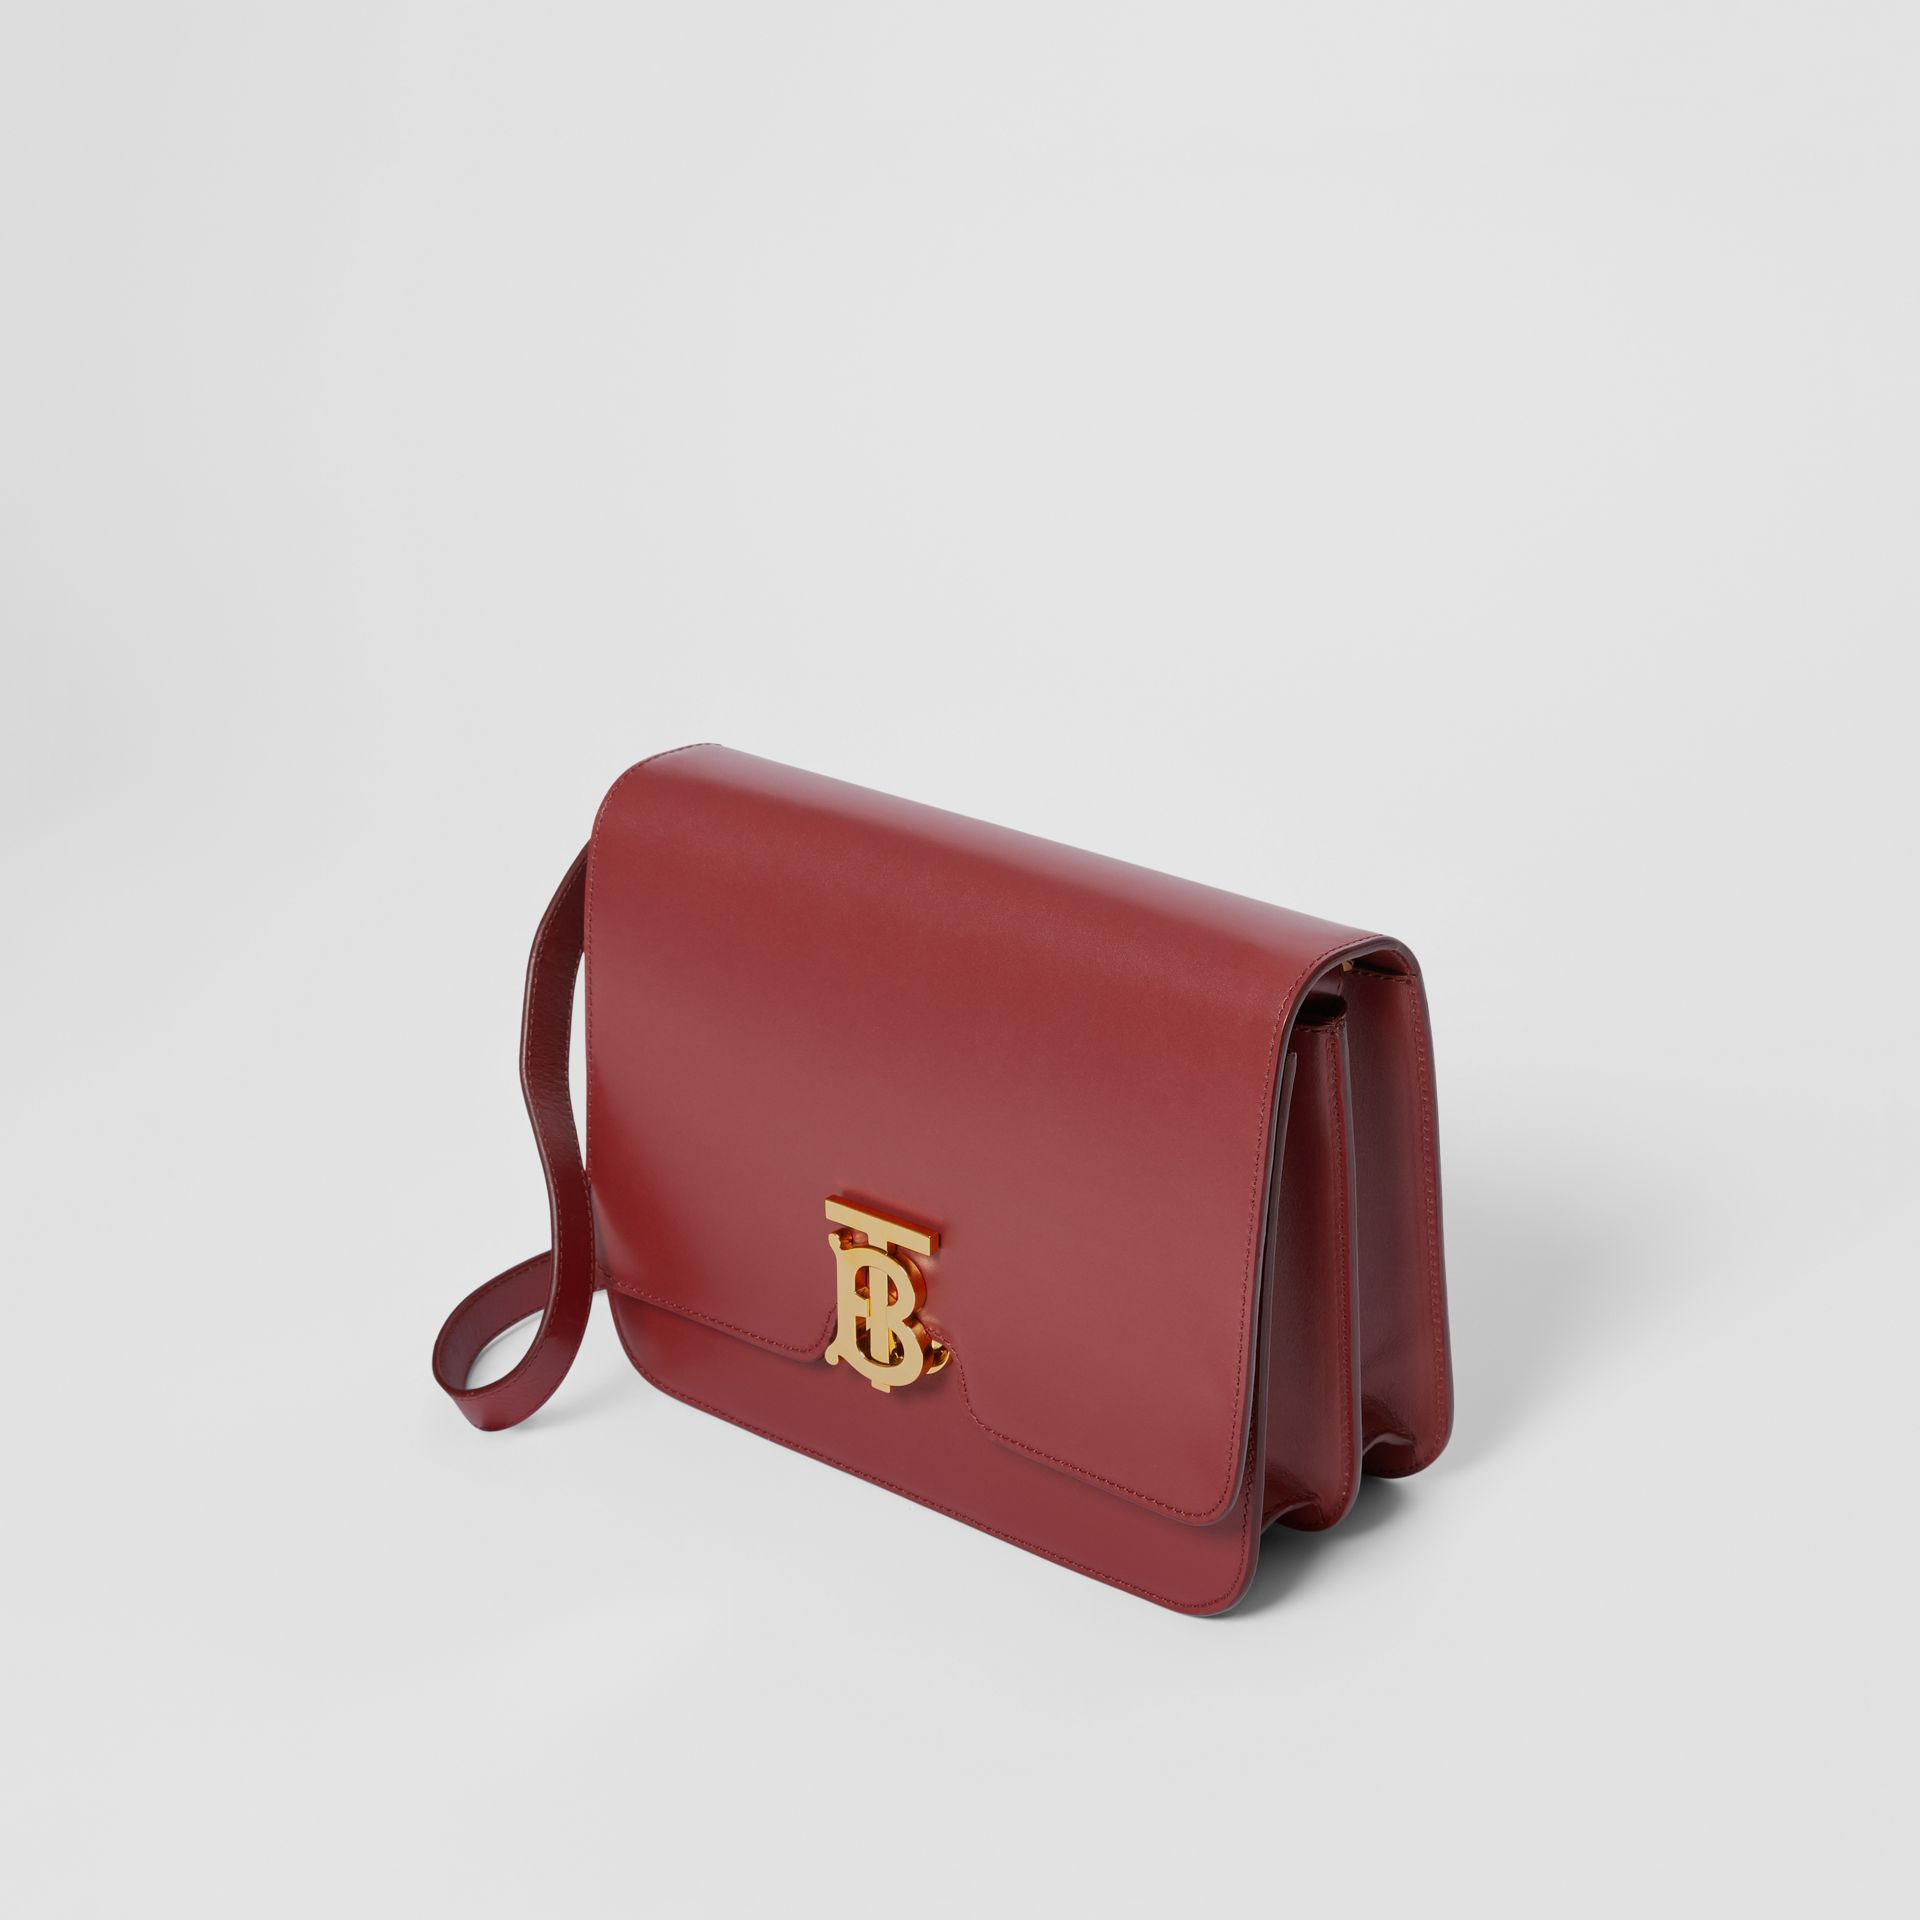 Medium Leather TB Bag in Crimson - Women | Burberry Canada - gallery image 3